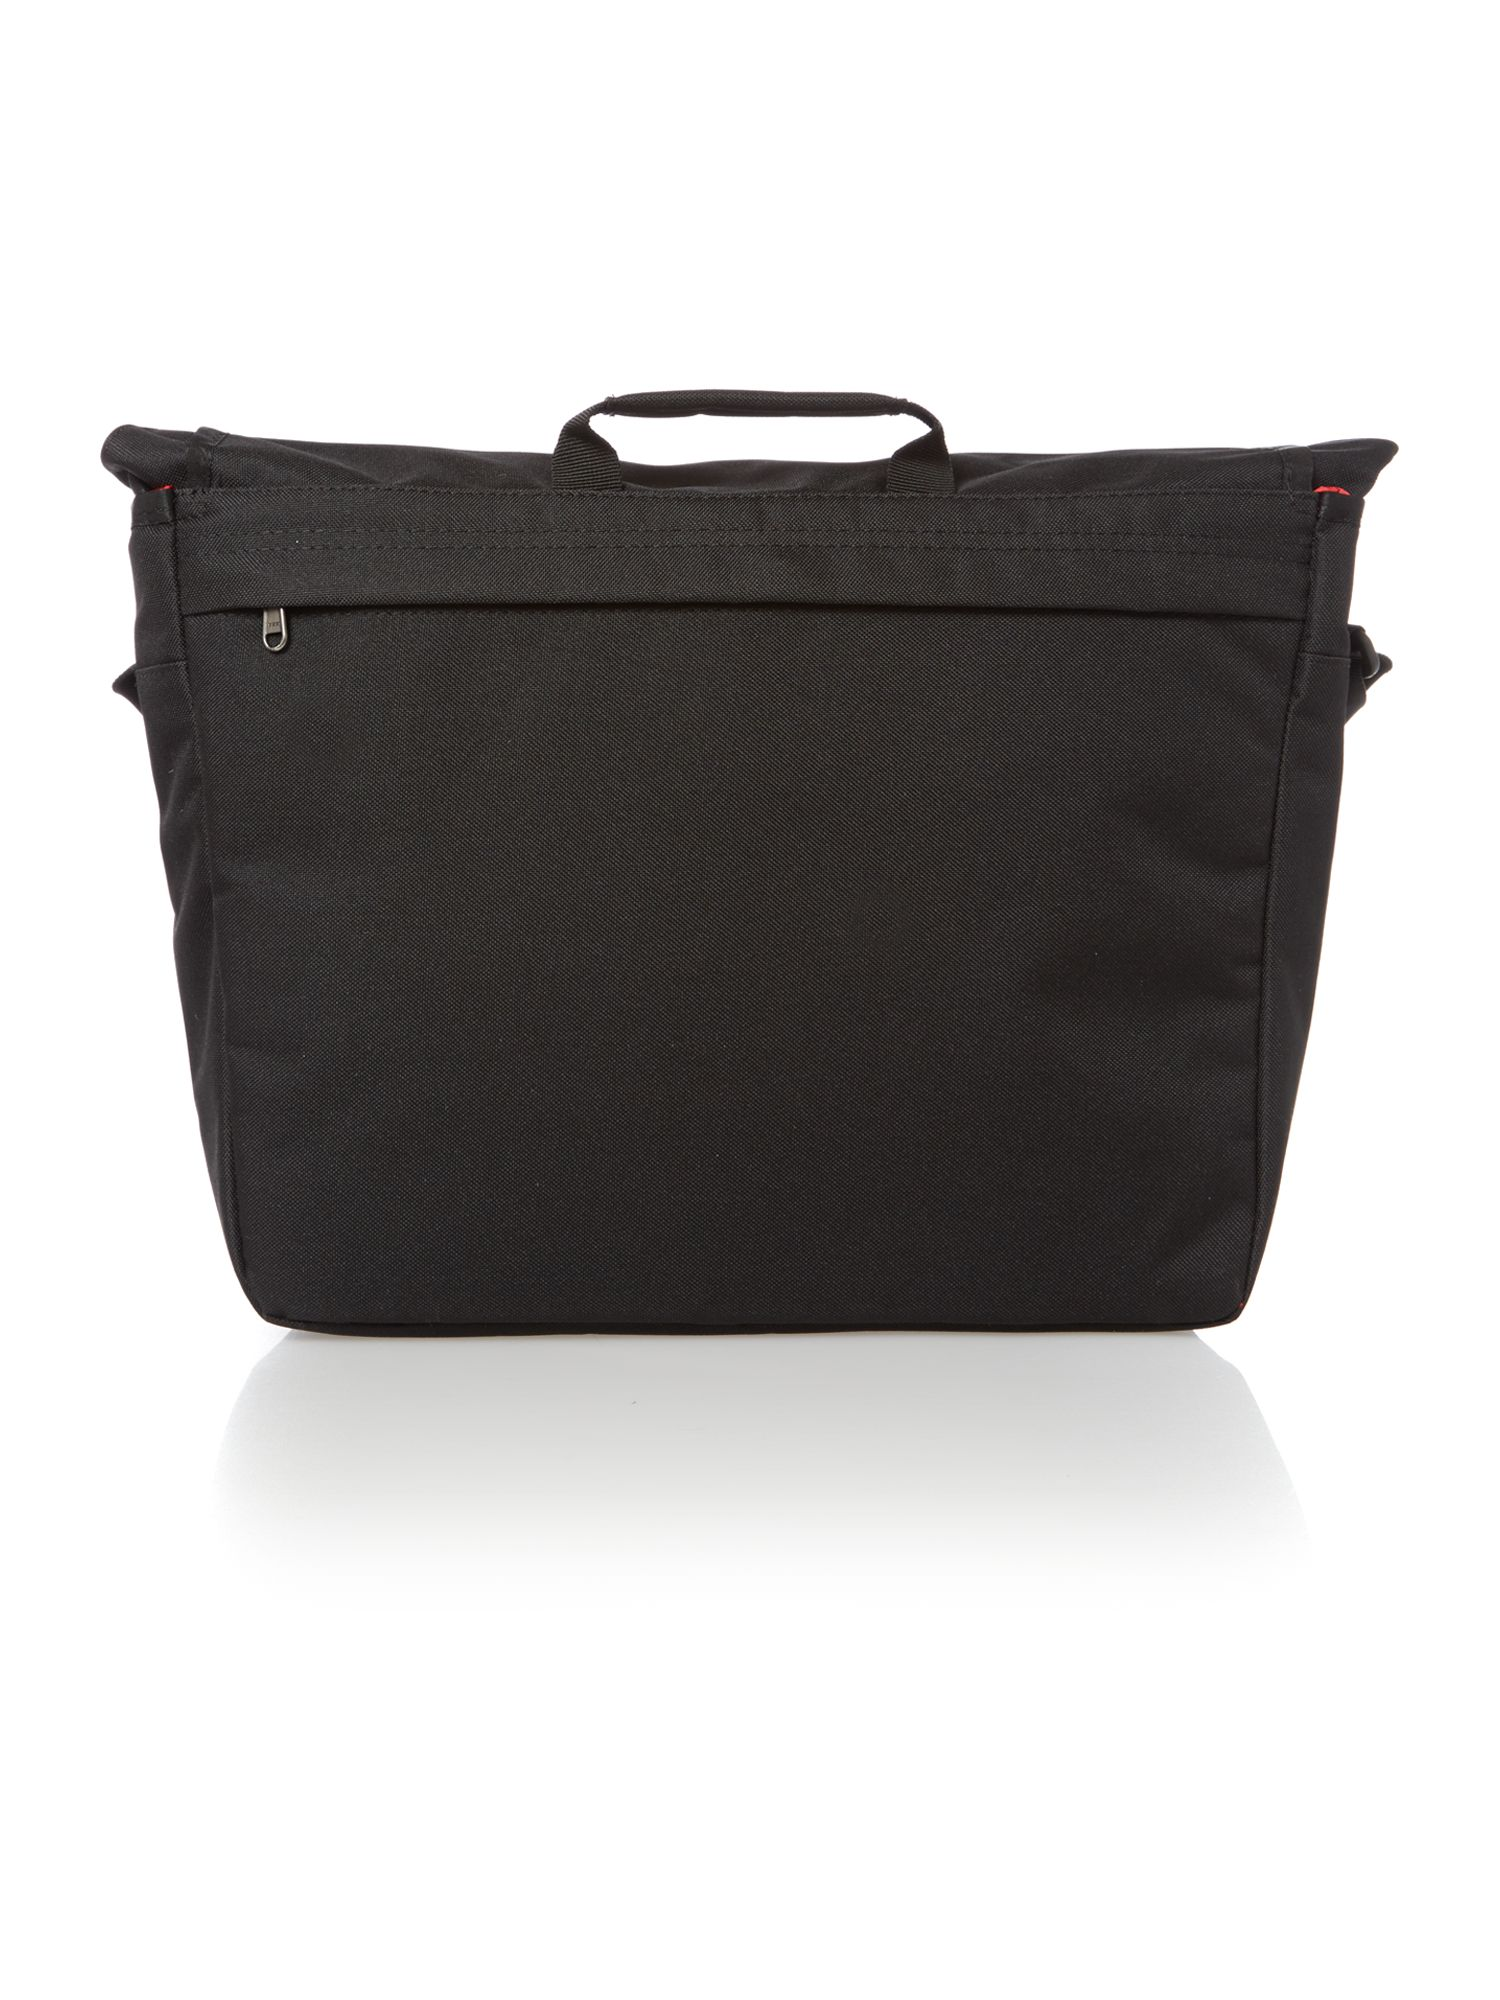 Ormondo messenger bag